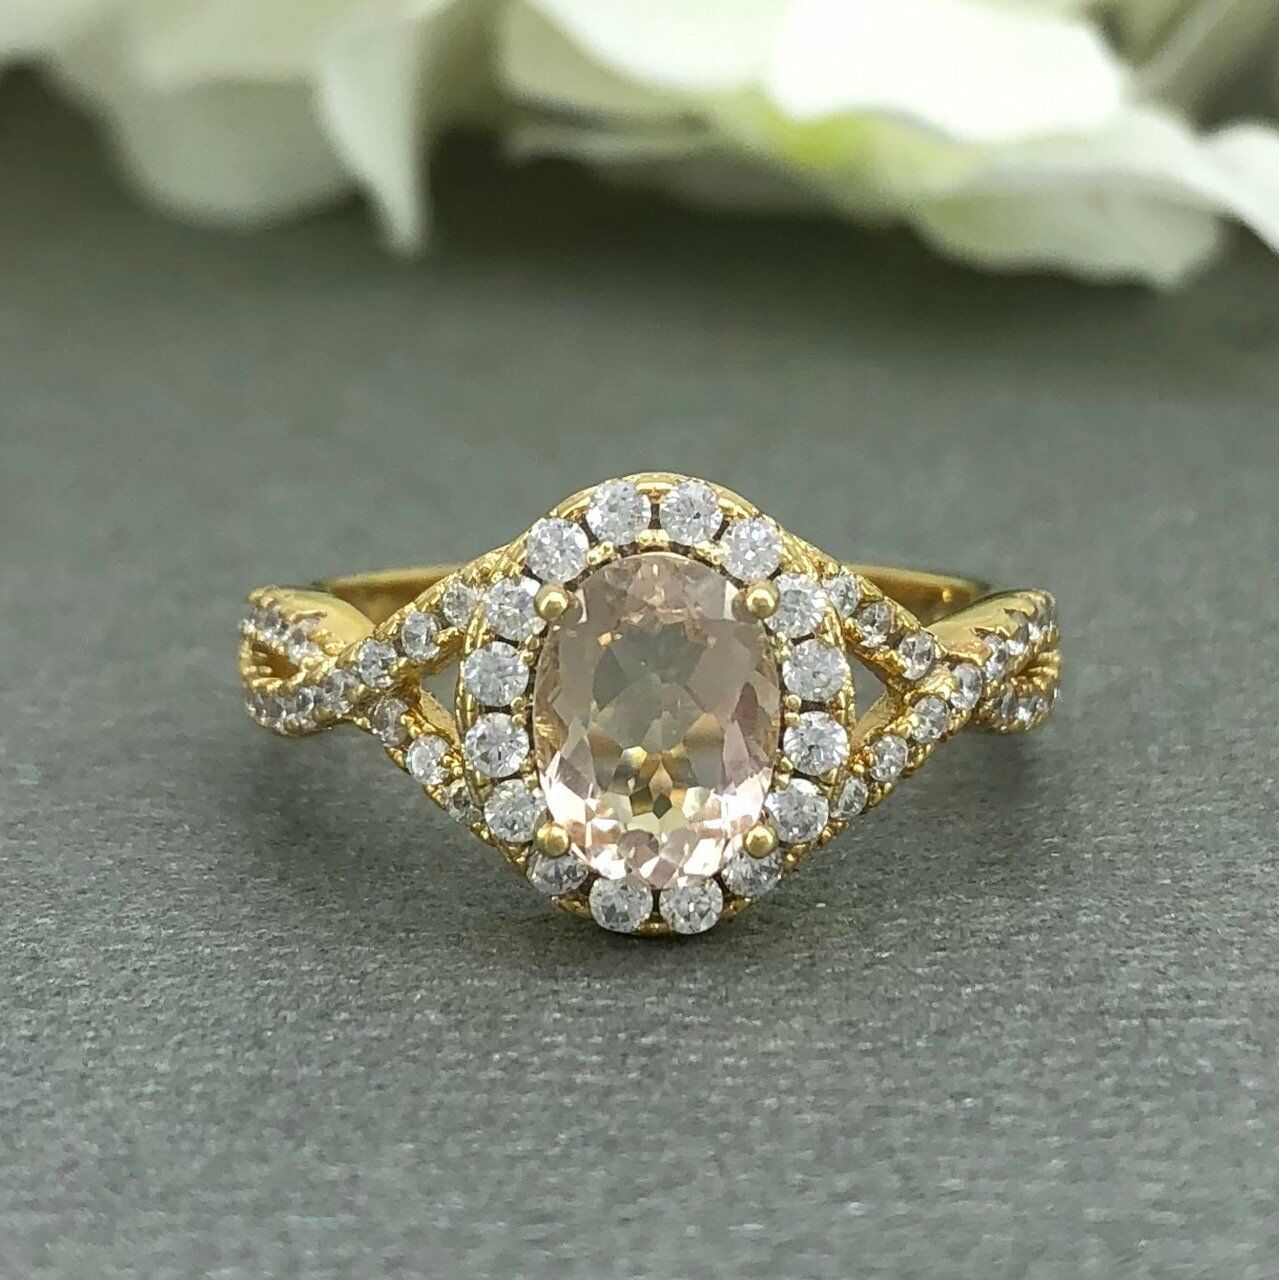 2ct Oval Cut Peach Morganite Halo Infinity Engagement Ring 14k Yellow gold Over